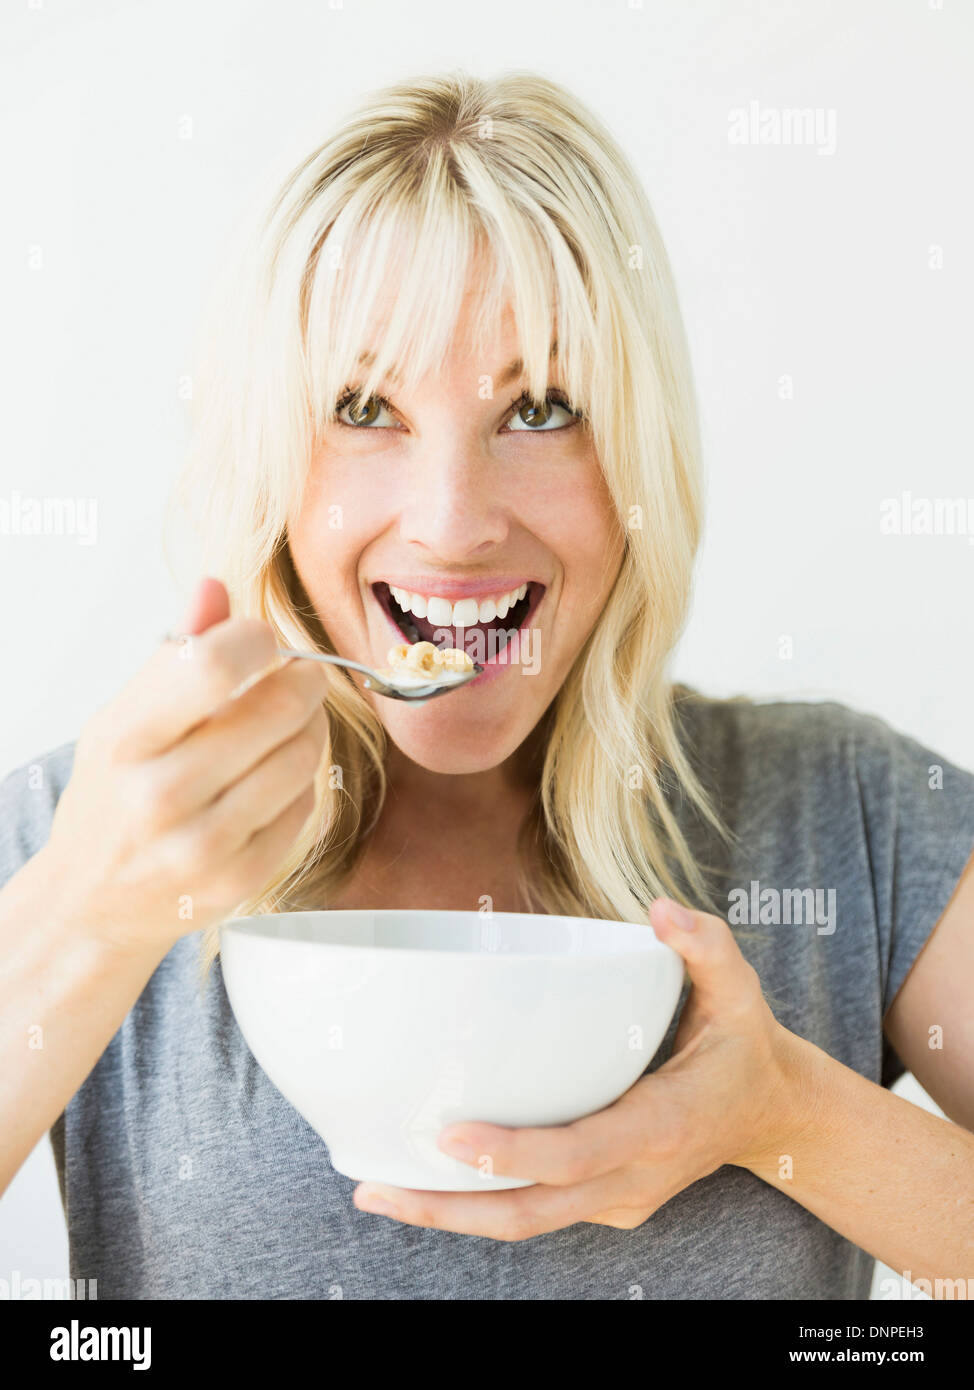 Woman eating cereals - Stock Image